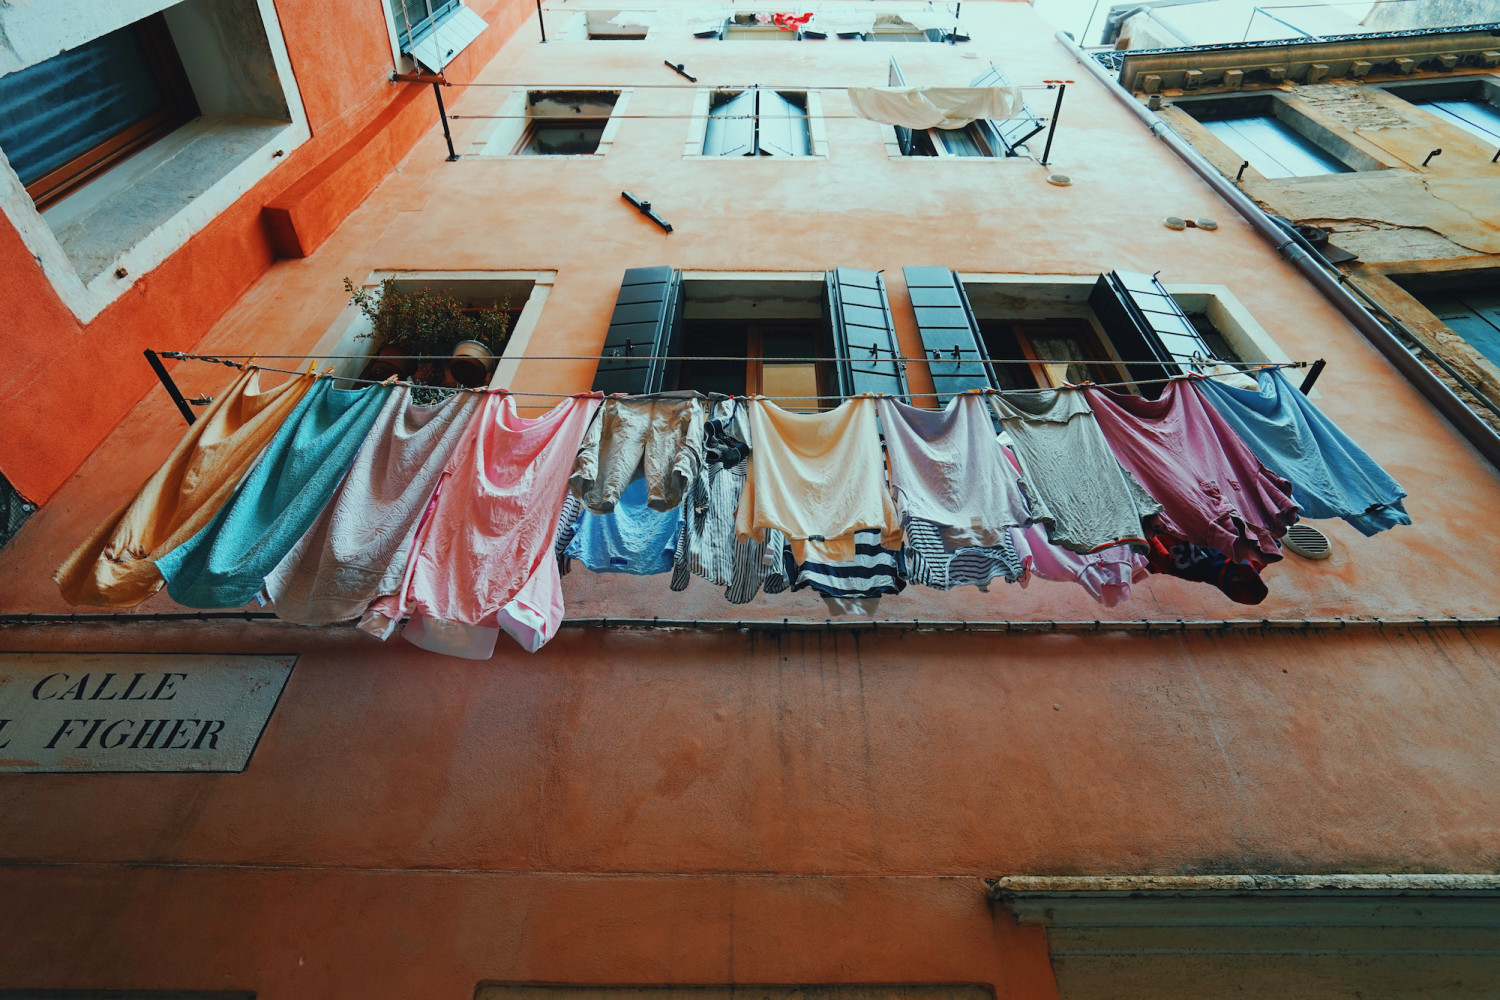 venice-laundry-looking-up-dante-vincent-photography